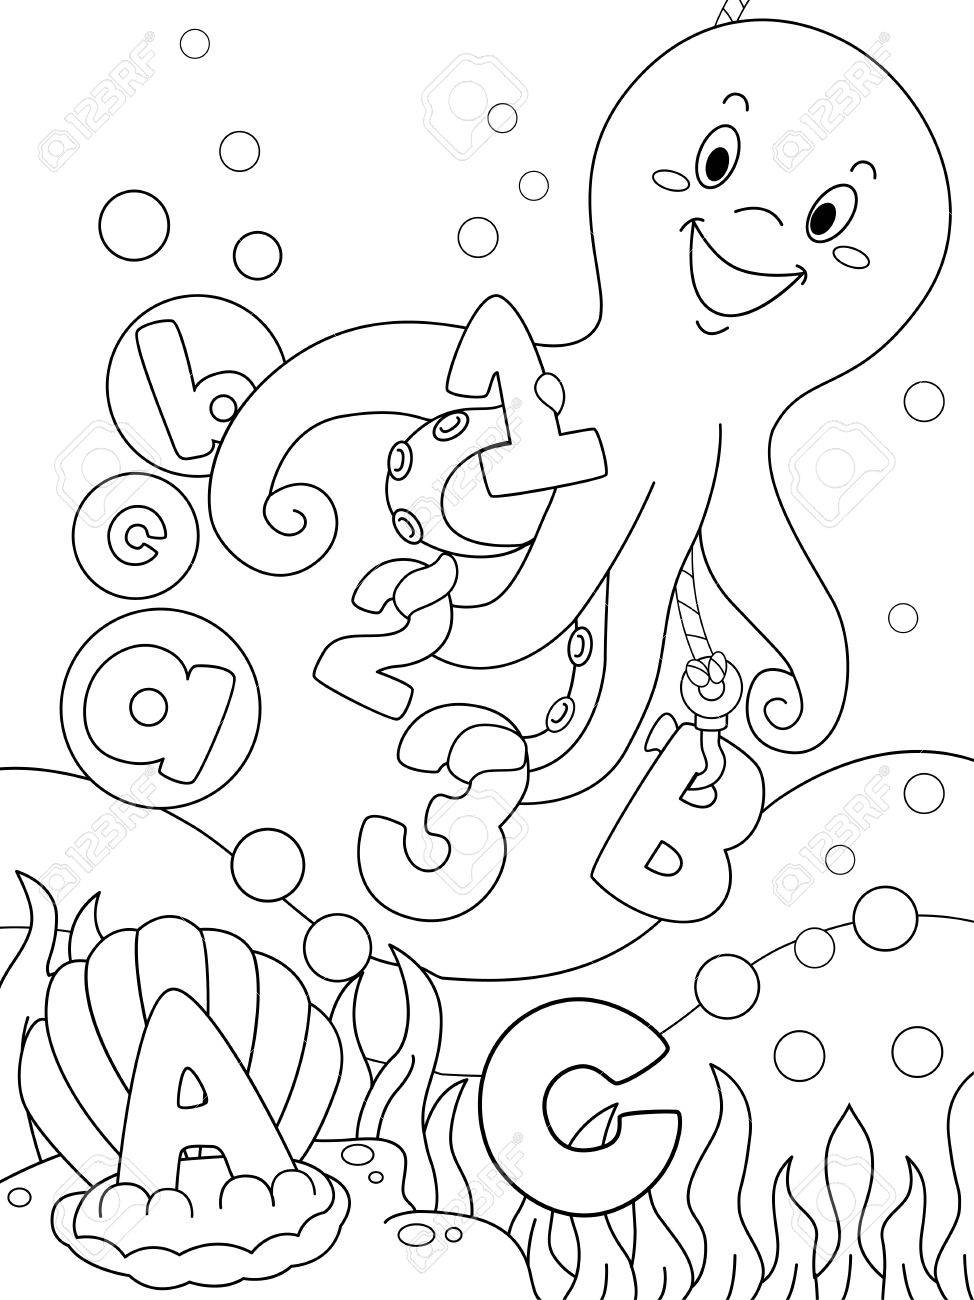 Illustration Featuring An Underwater Coloring Page That Can Be ...